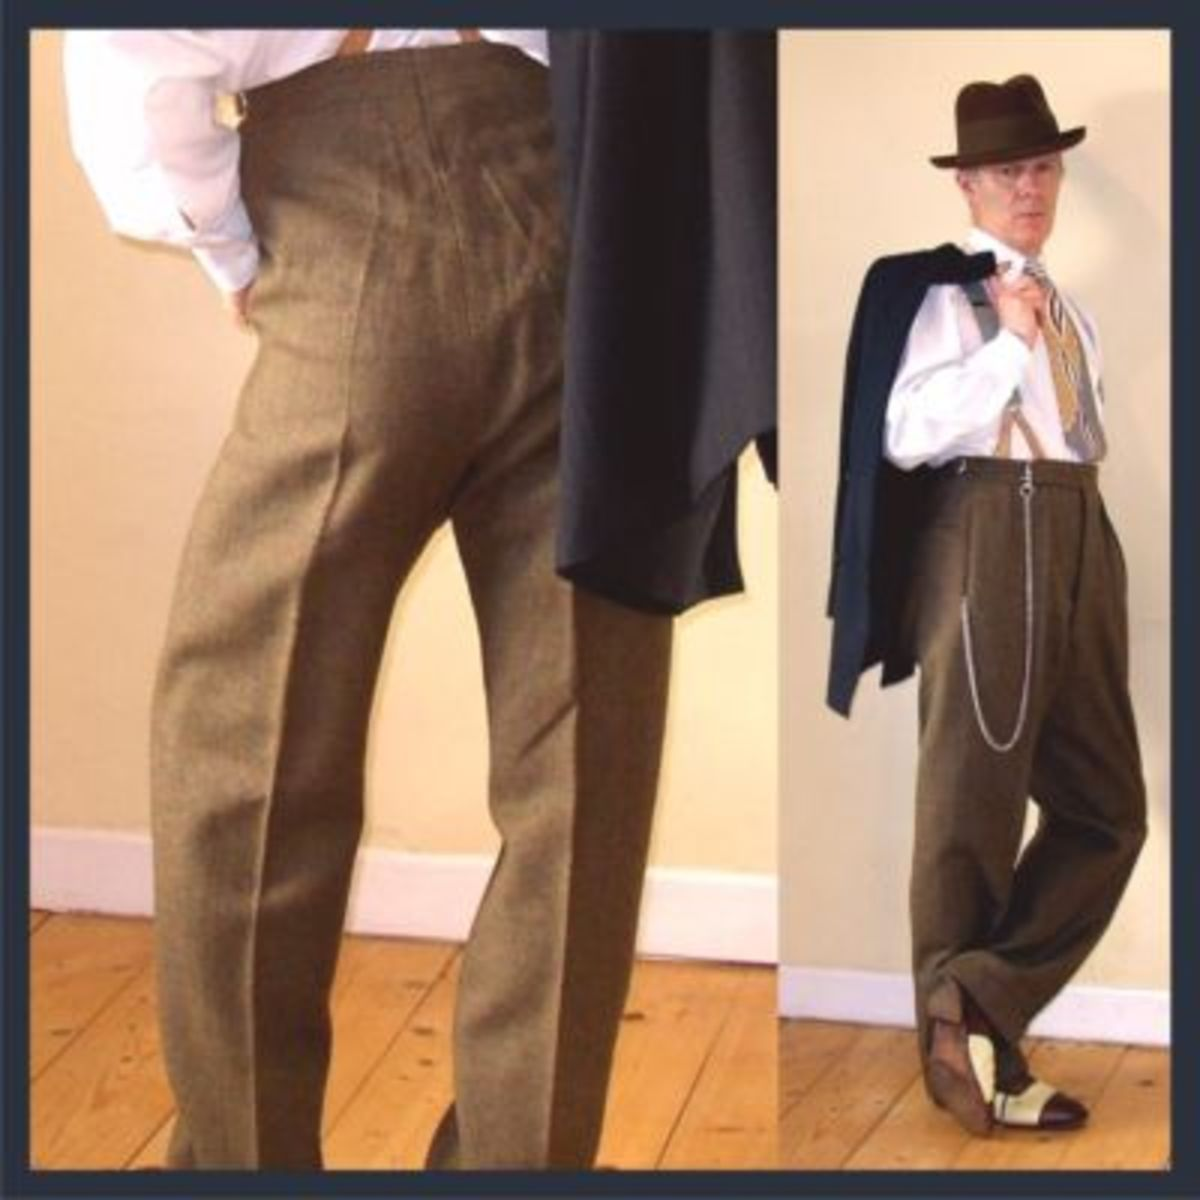 Men's style with suspenders